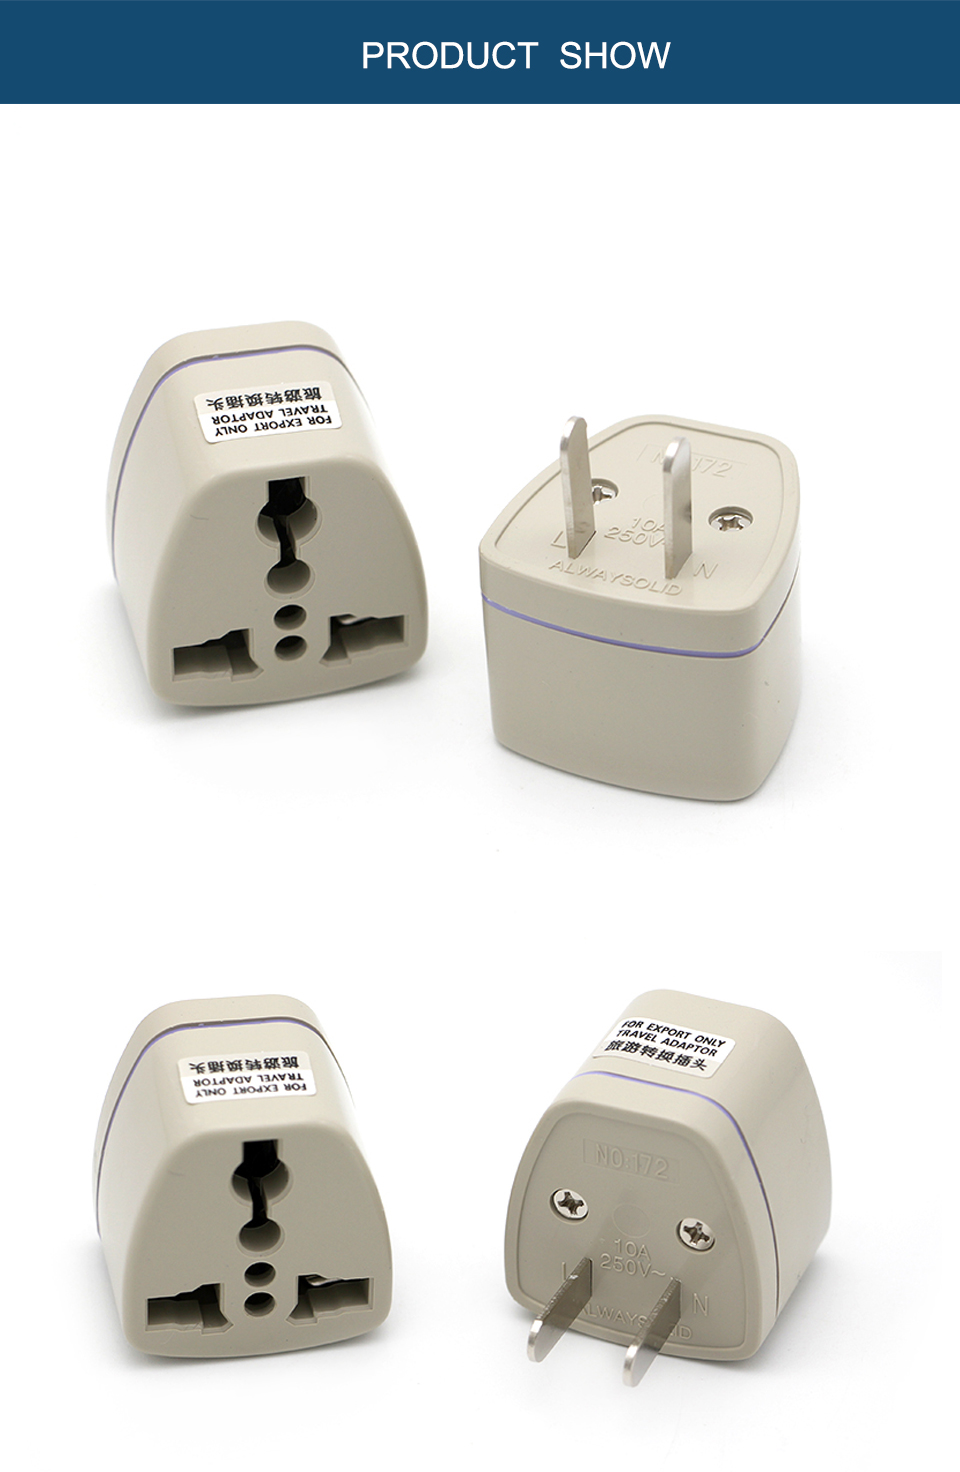 1PC New Arrivals EU UK AU to US Plugs adapter Power Converter Plugs 2 Pin Socket EU to America Travel Charger Adapter Converter (10)